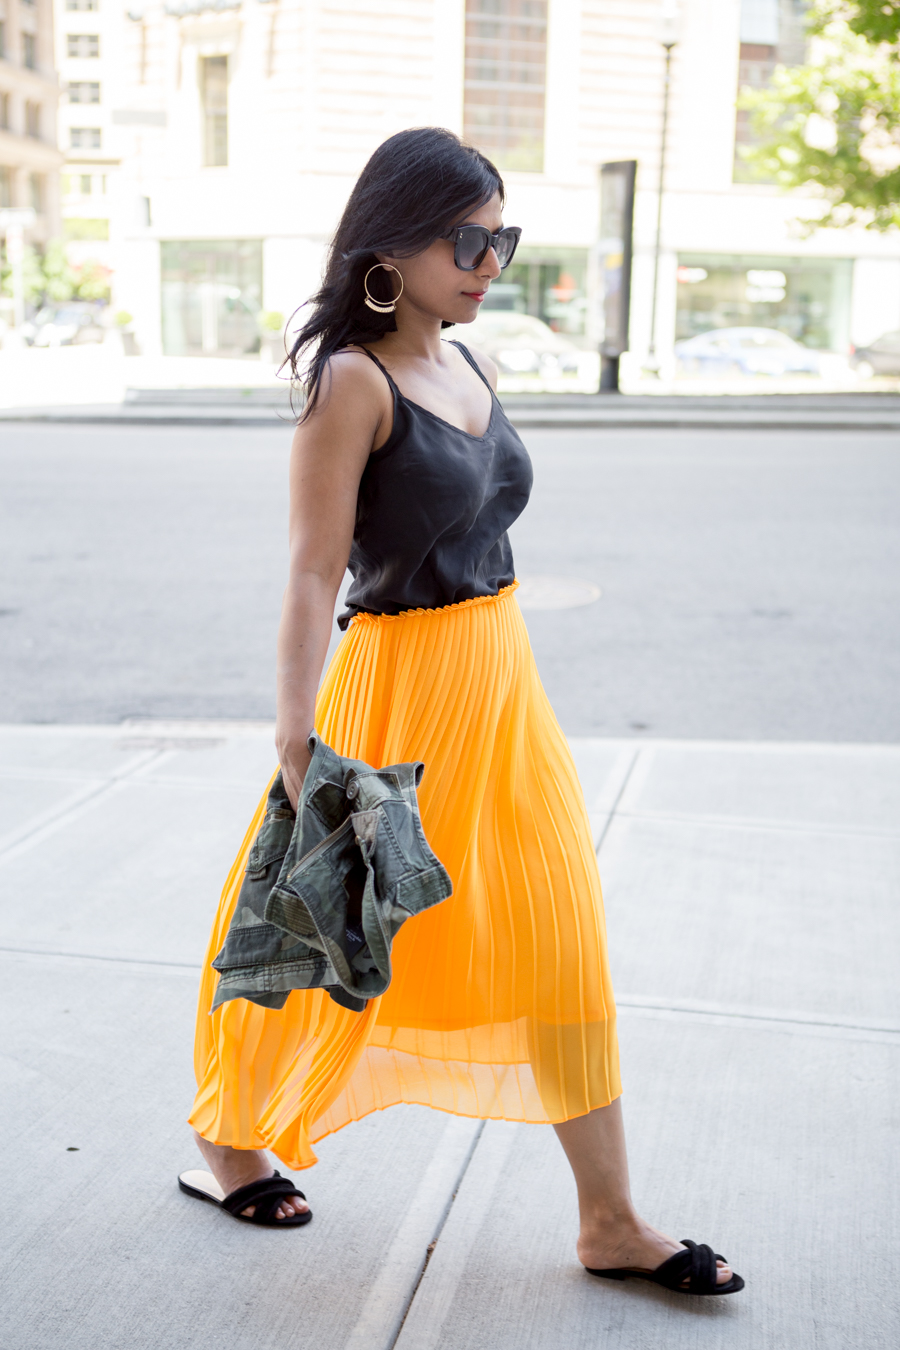 ann taylor, taxi cab yellow, marigold, pleats, midiskirt, urban chic, edgy, trendy, feminine style, style tips, style hunter, stylist, petite fashion, abercrombie, affordable style, style remix, petite blogger, boston blogger, boston back bay